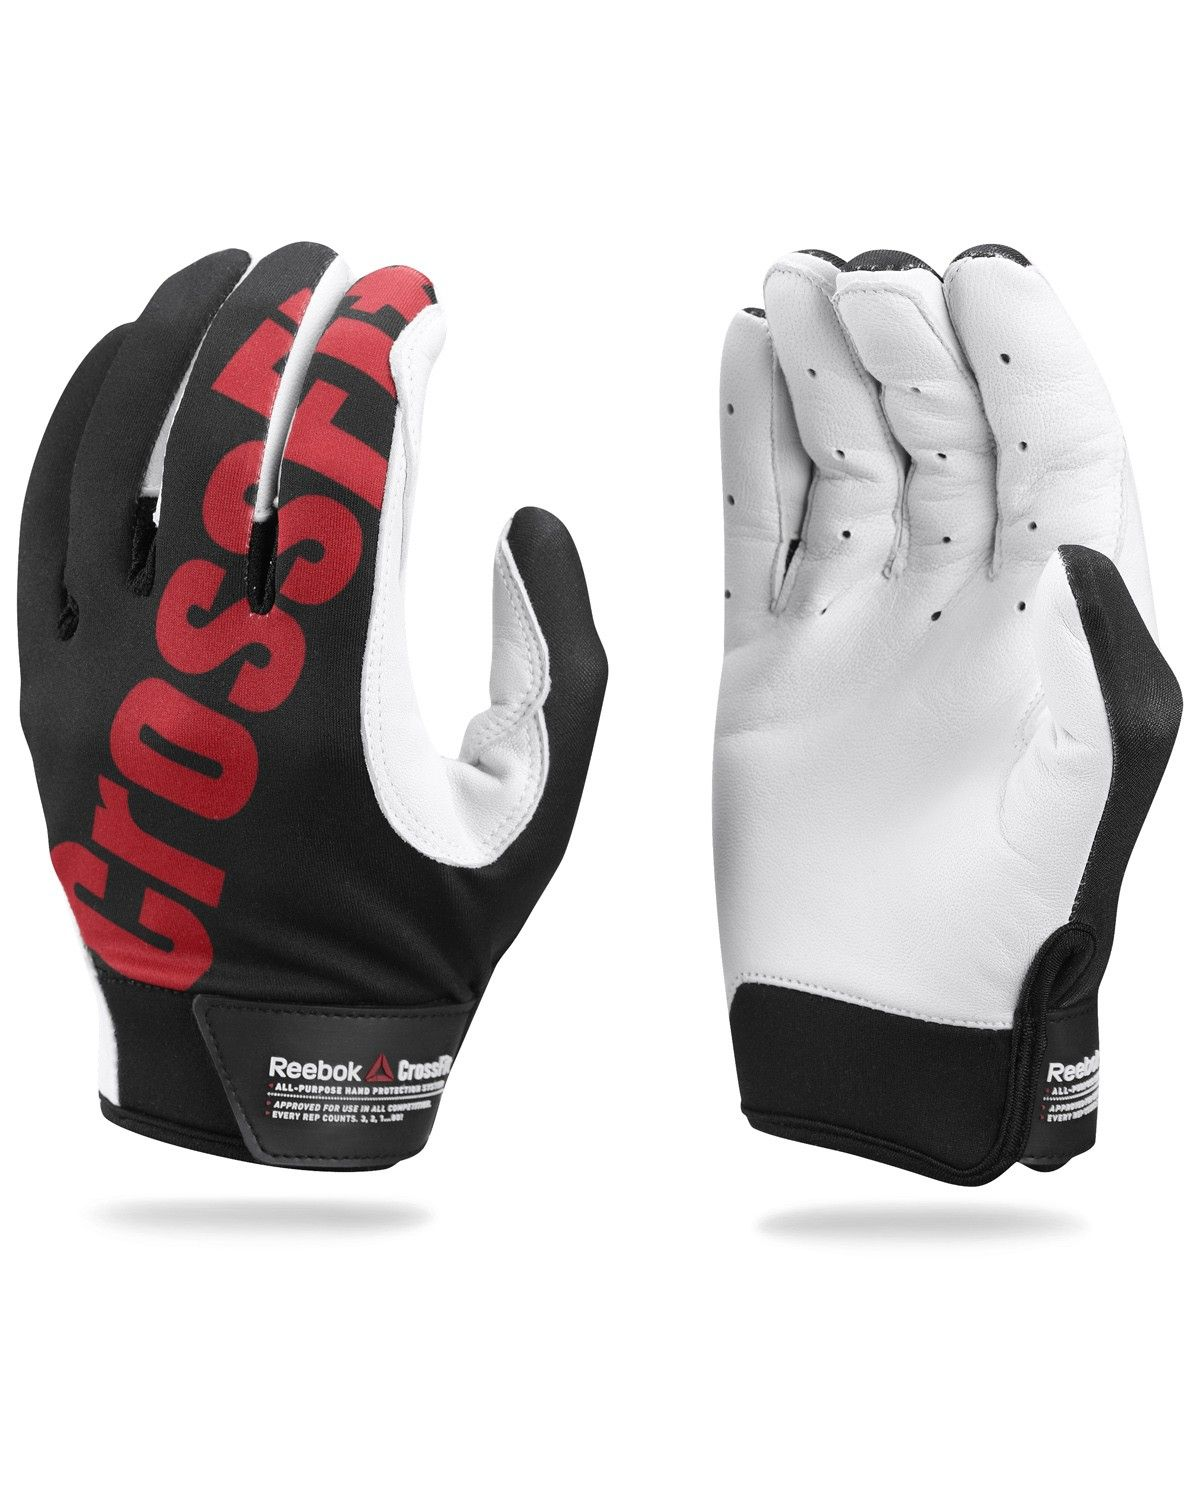 Reebok Crossfit Training Gloves: Need. Reebok CrossFit Gloves